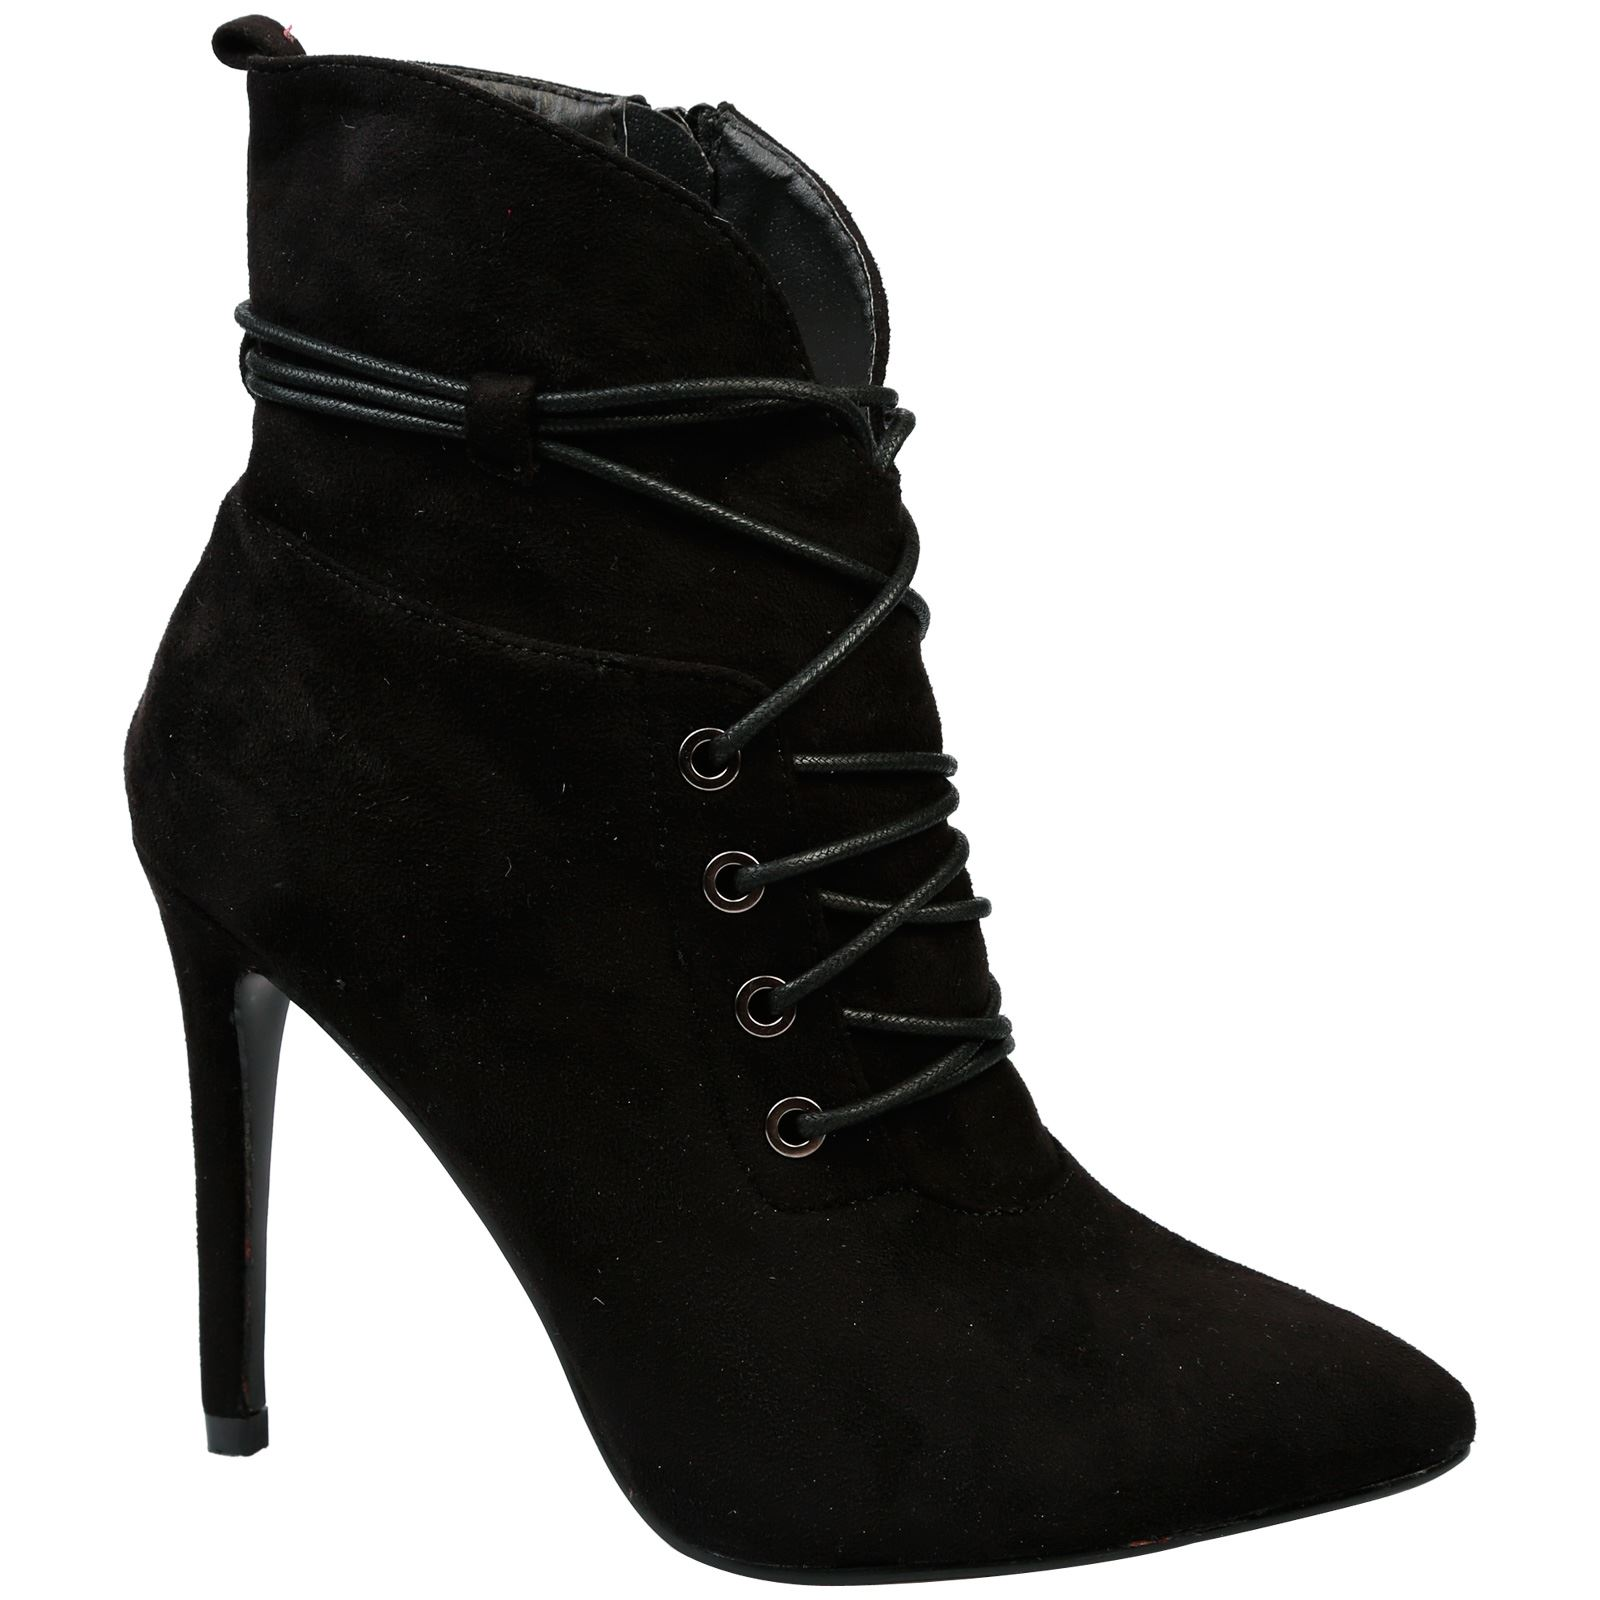 Office Suede Stiletto Heeled Anckle Boots. Size 5